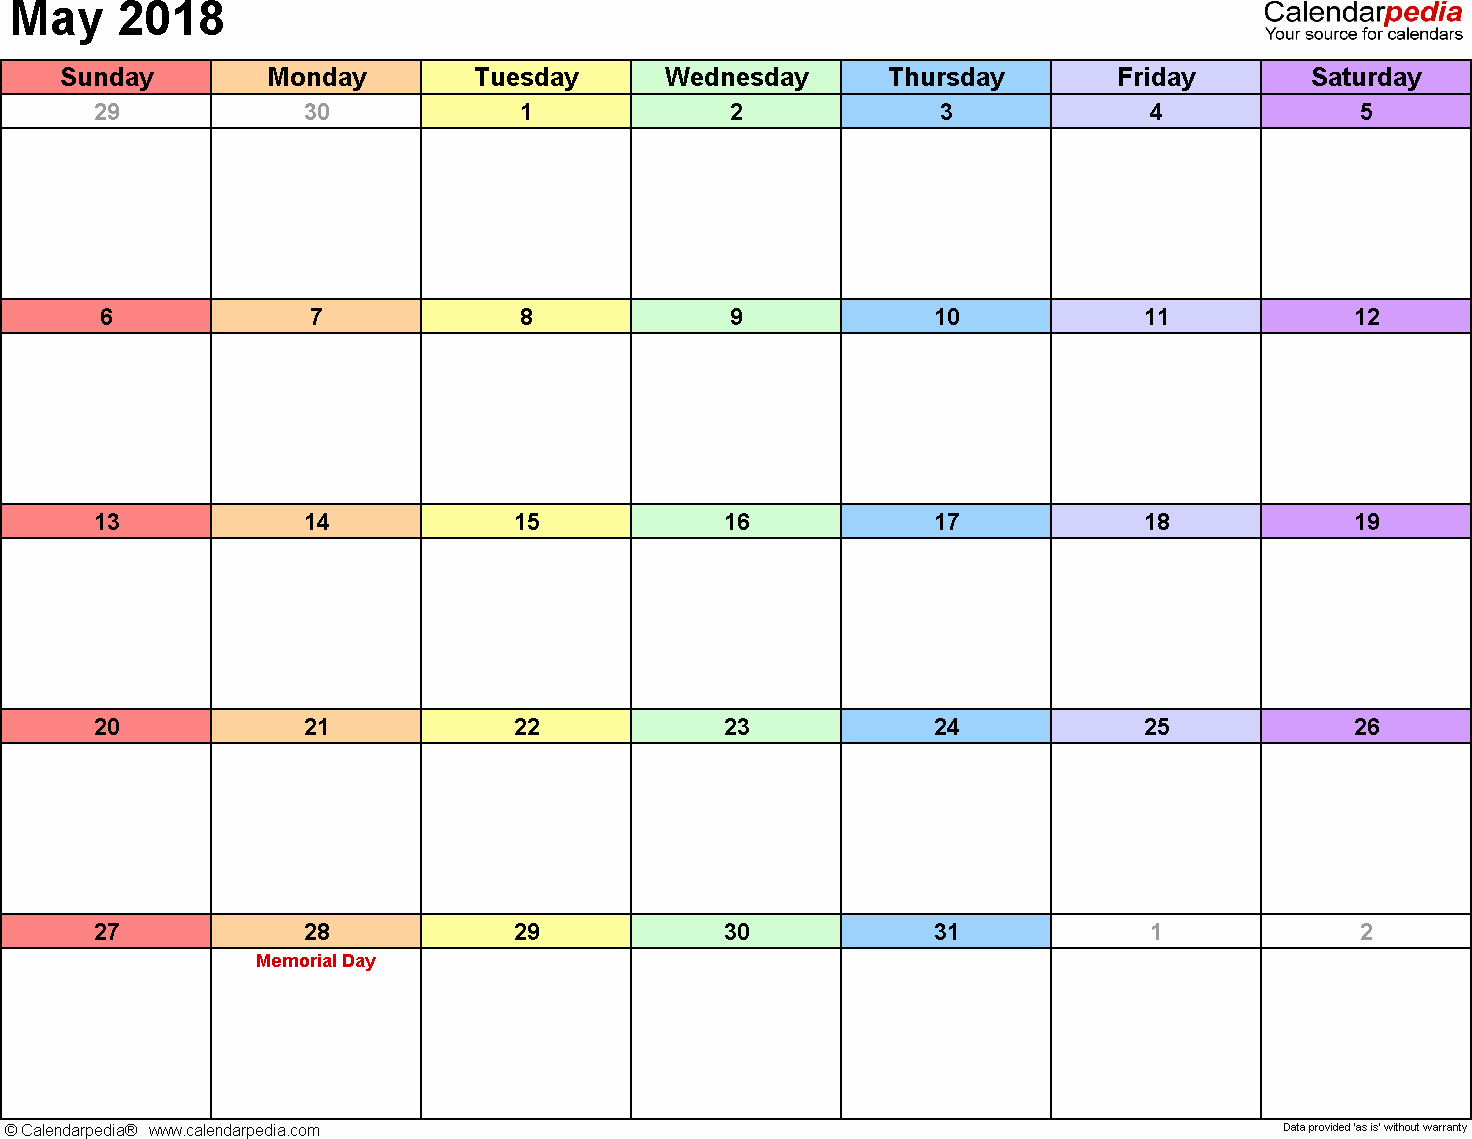 Free May 2018 Calendar Template Best Of May 2018 Calendar with Holidays